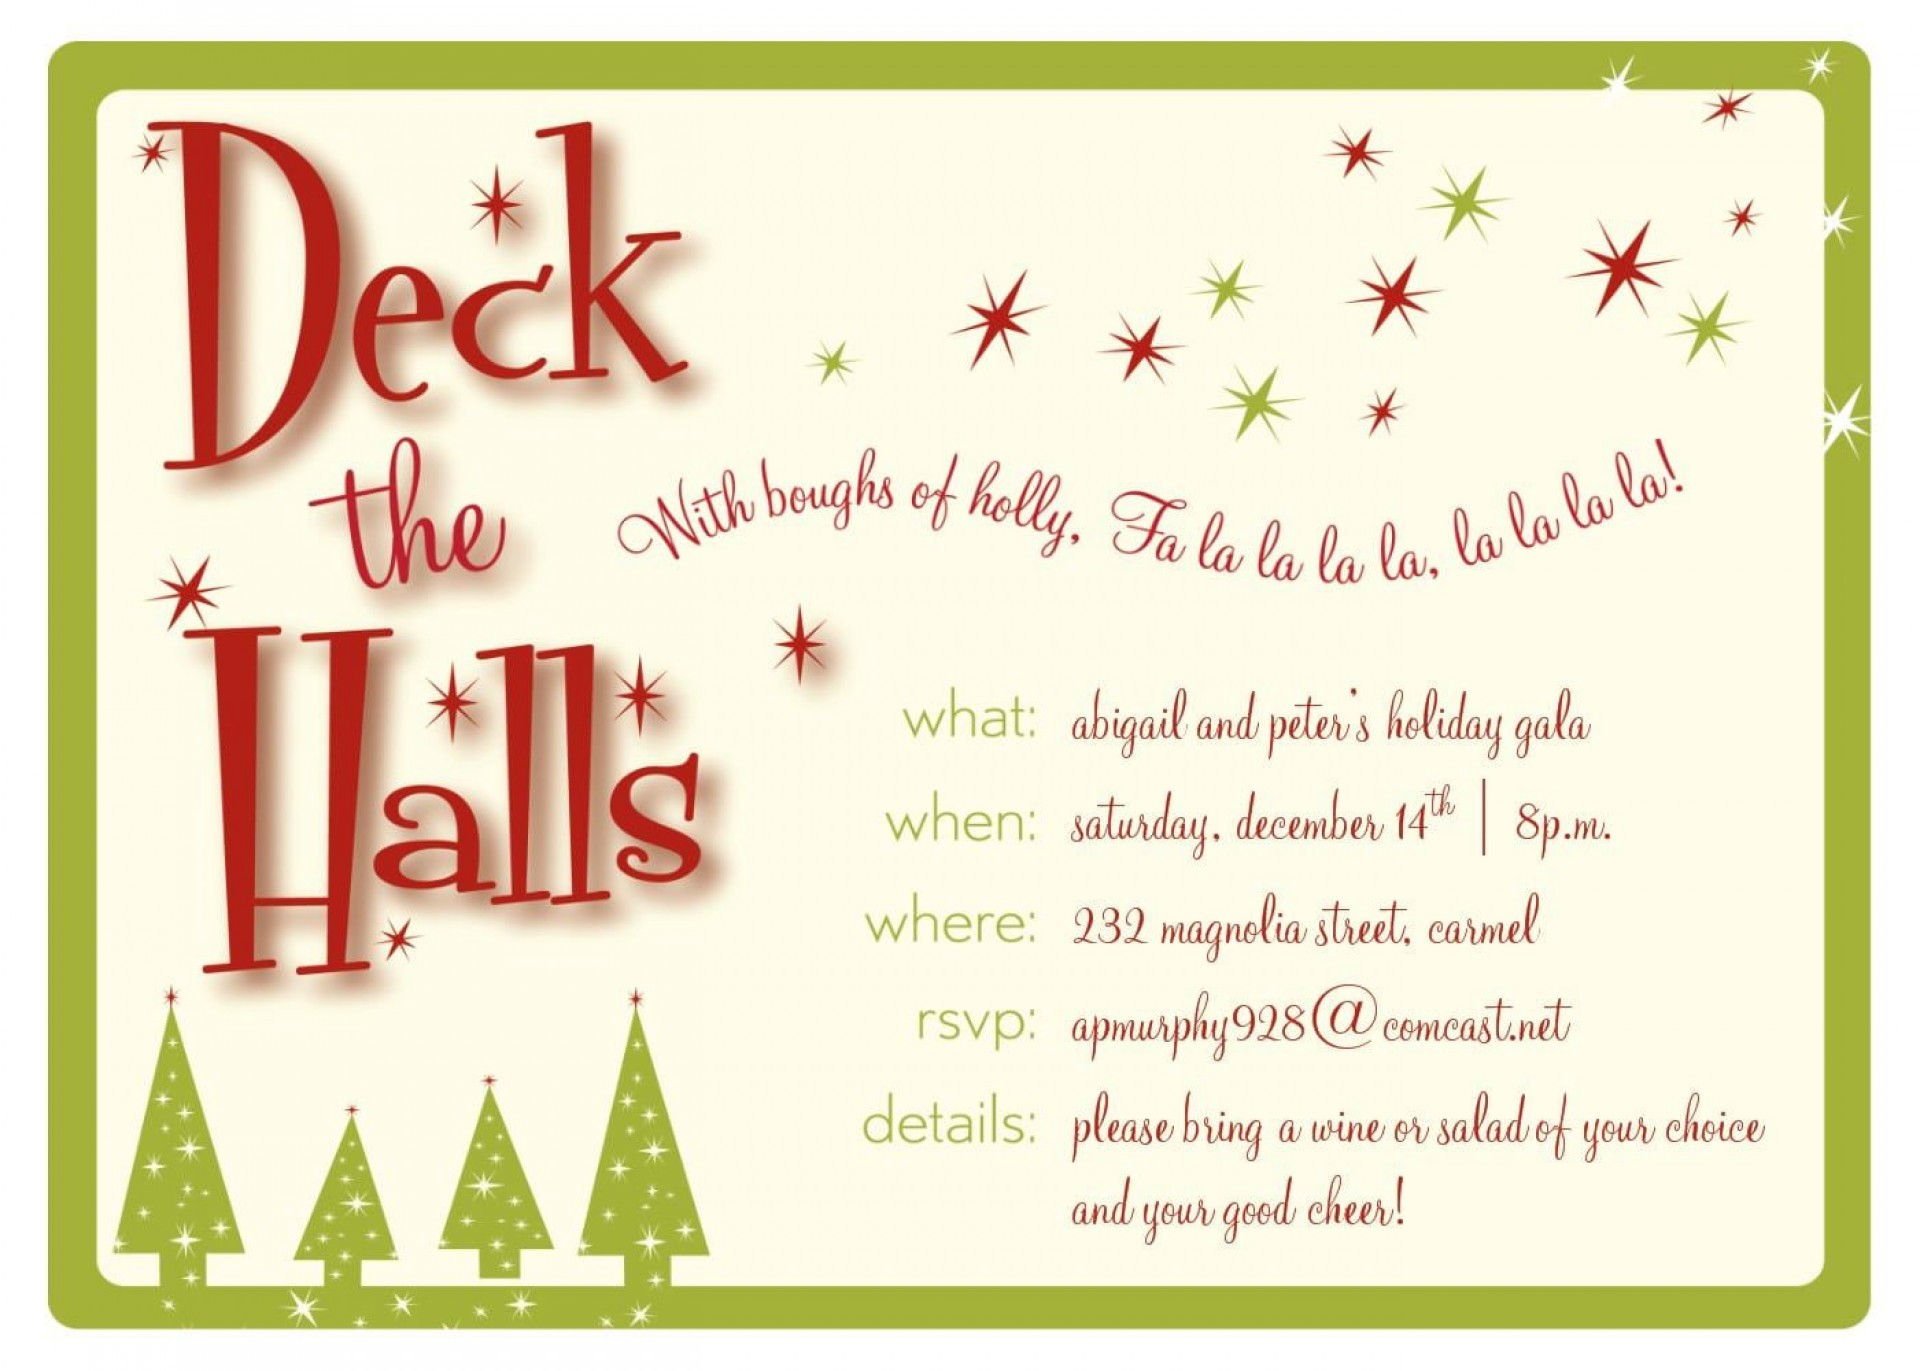 008 Unique Free Holiday Invite Template High Resolution  Templates Party Ticket For Email1920